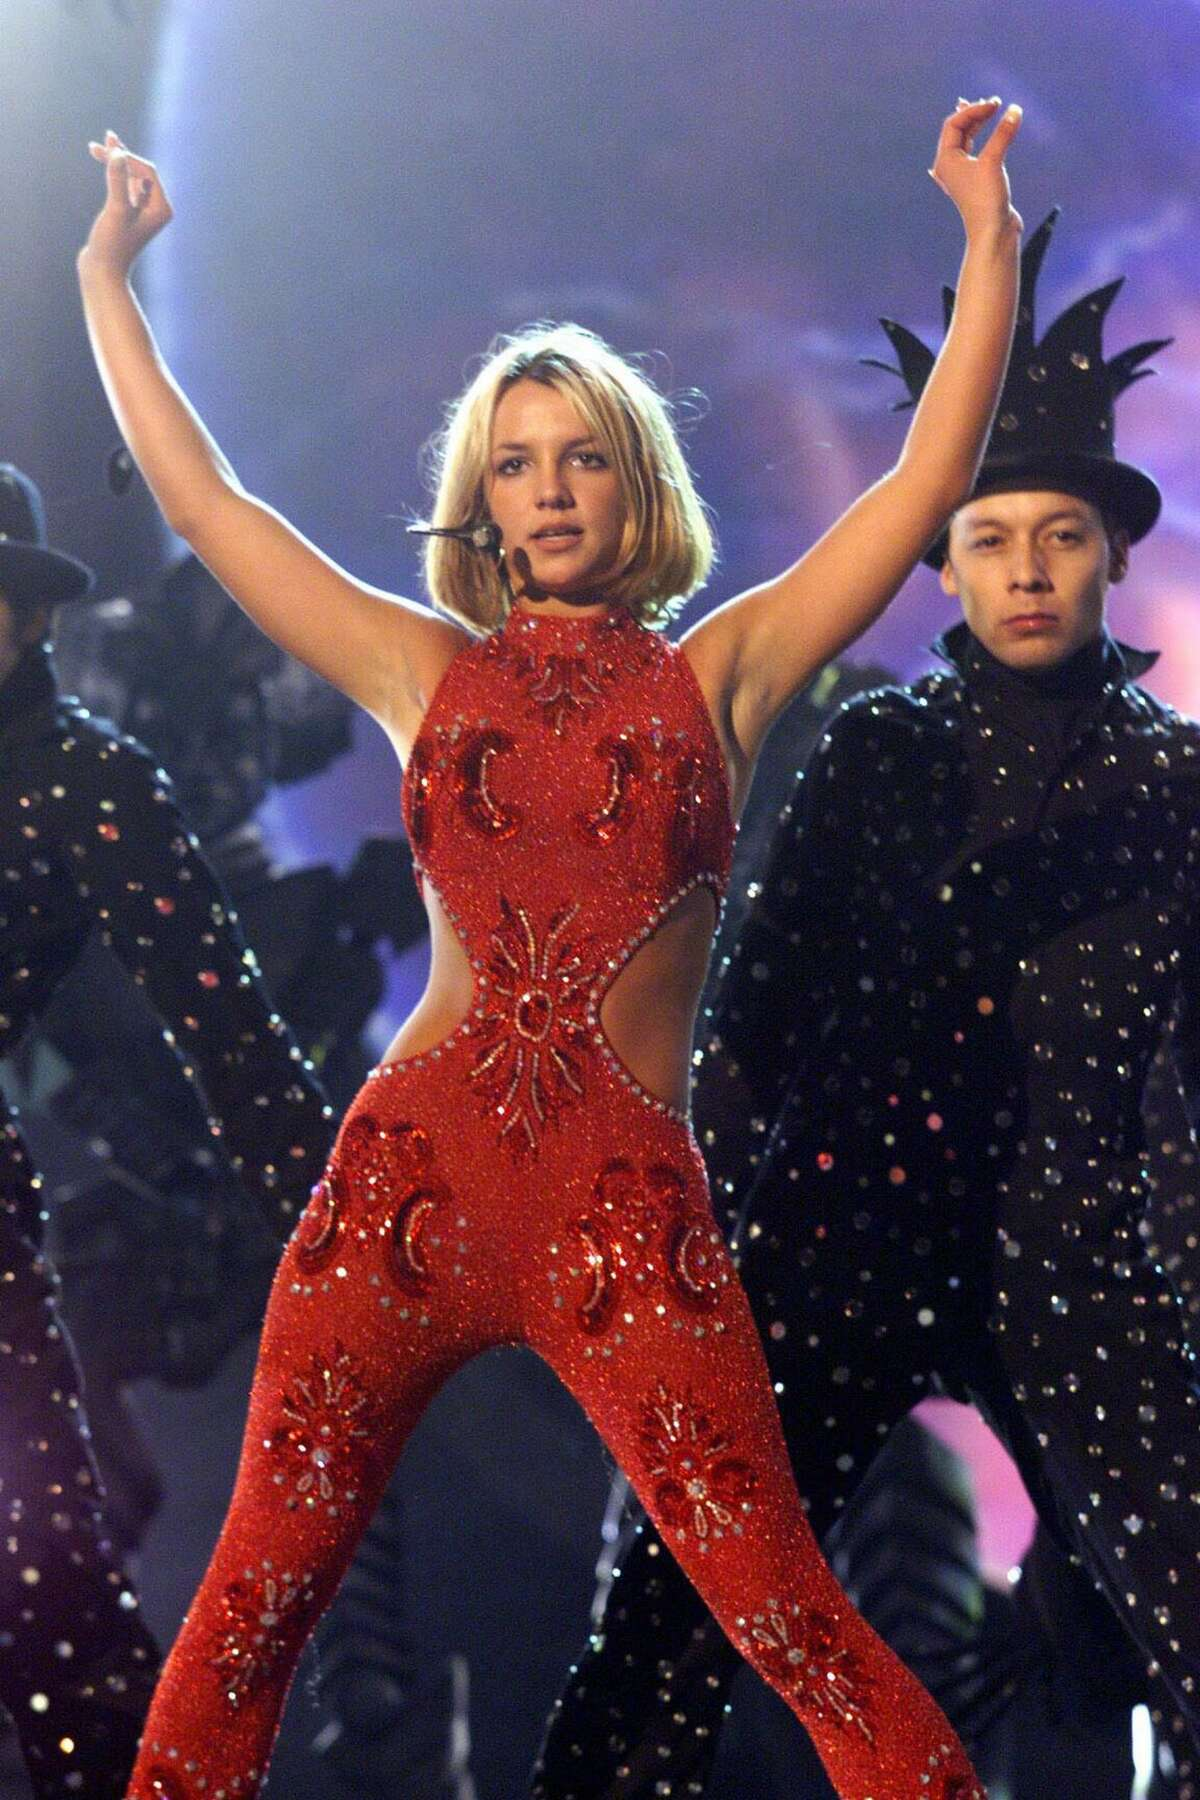 LOS ANGELES - FEBRUARY 24: American pop star Britney Spears performs on stage at the Grammy Awards 2000 on February 24, 2000 in Los Angeles, United States. (Photo by Dave Hogan/Getty Images)